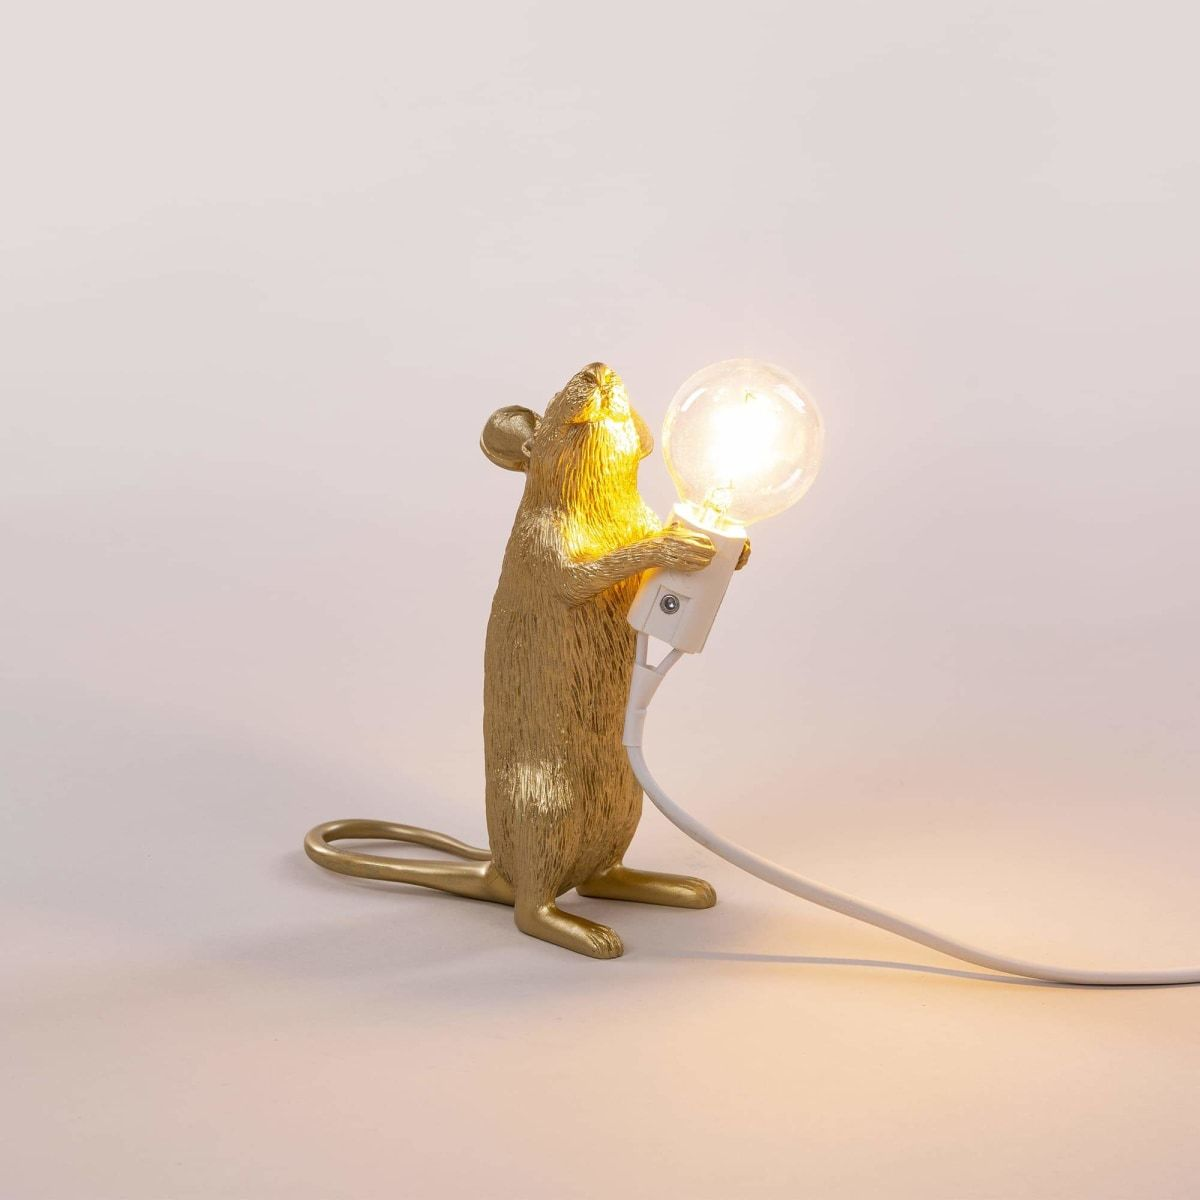 Lampe souris or